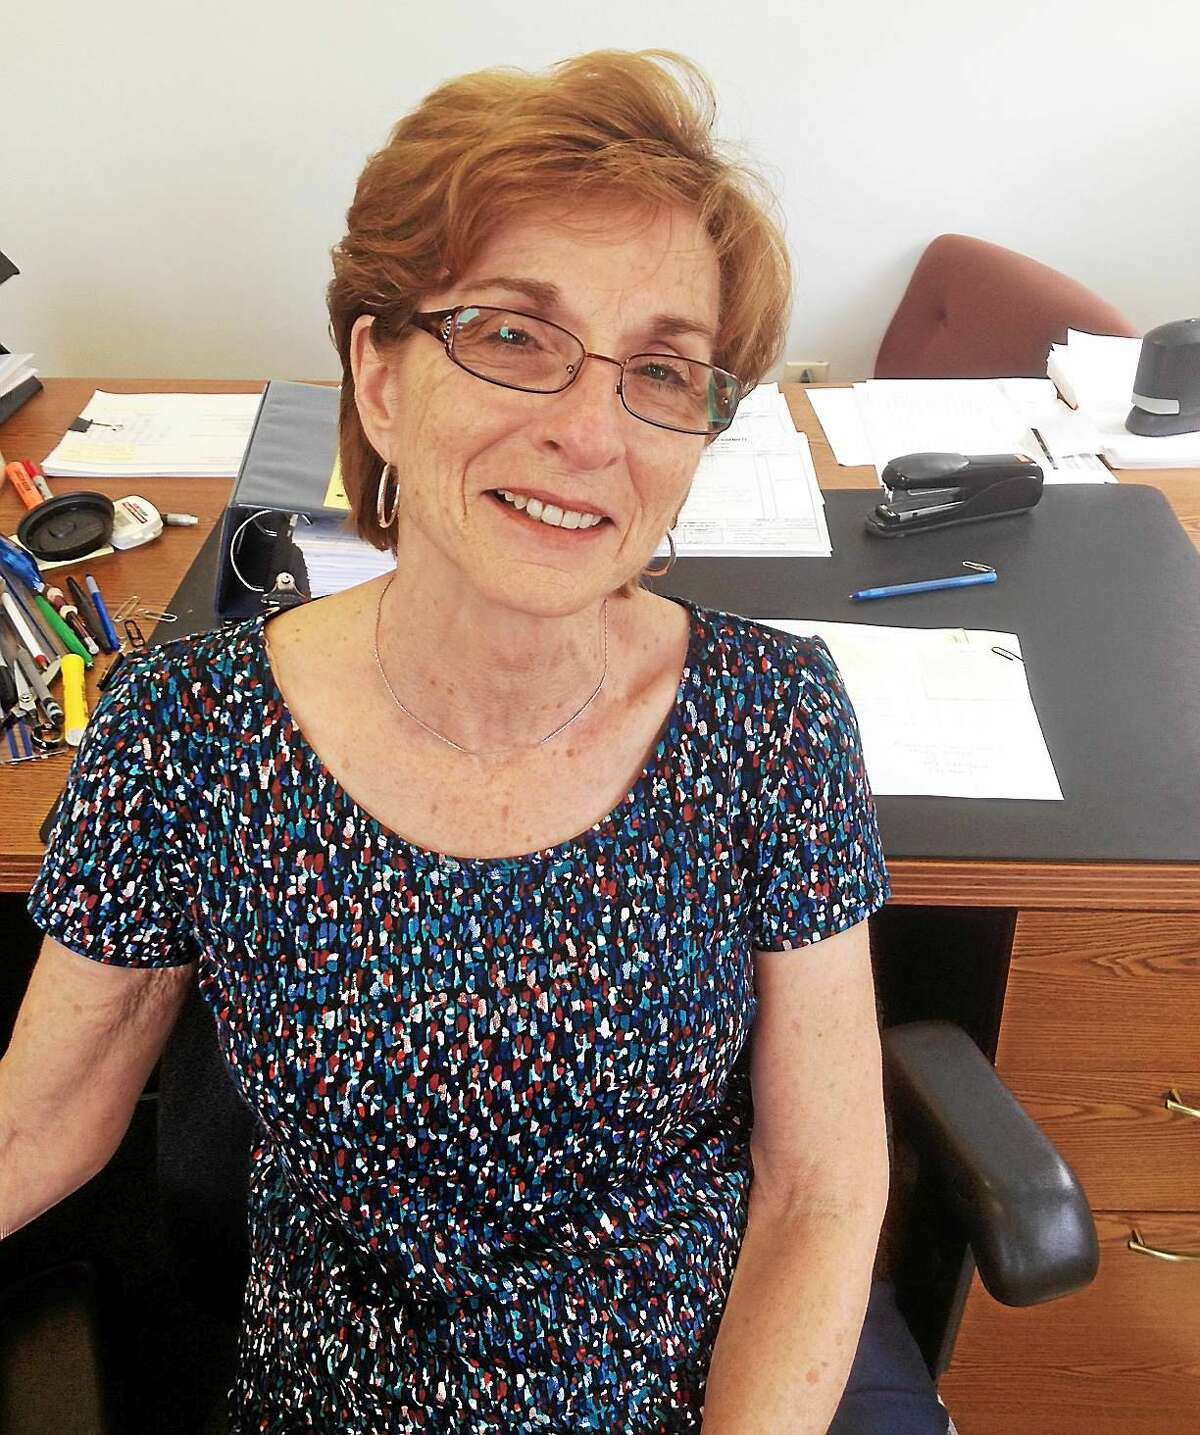 Lois DeBernardino, the recently retired assistant accountant at Cromwell Town Hall, who served for the past 38 years, says work has been her passion.